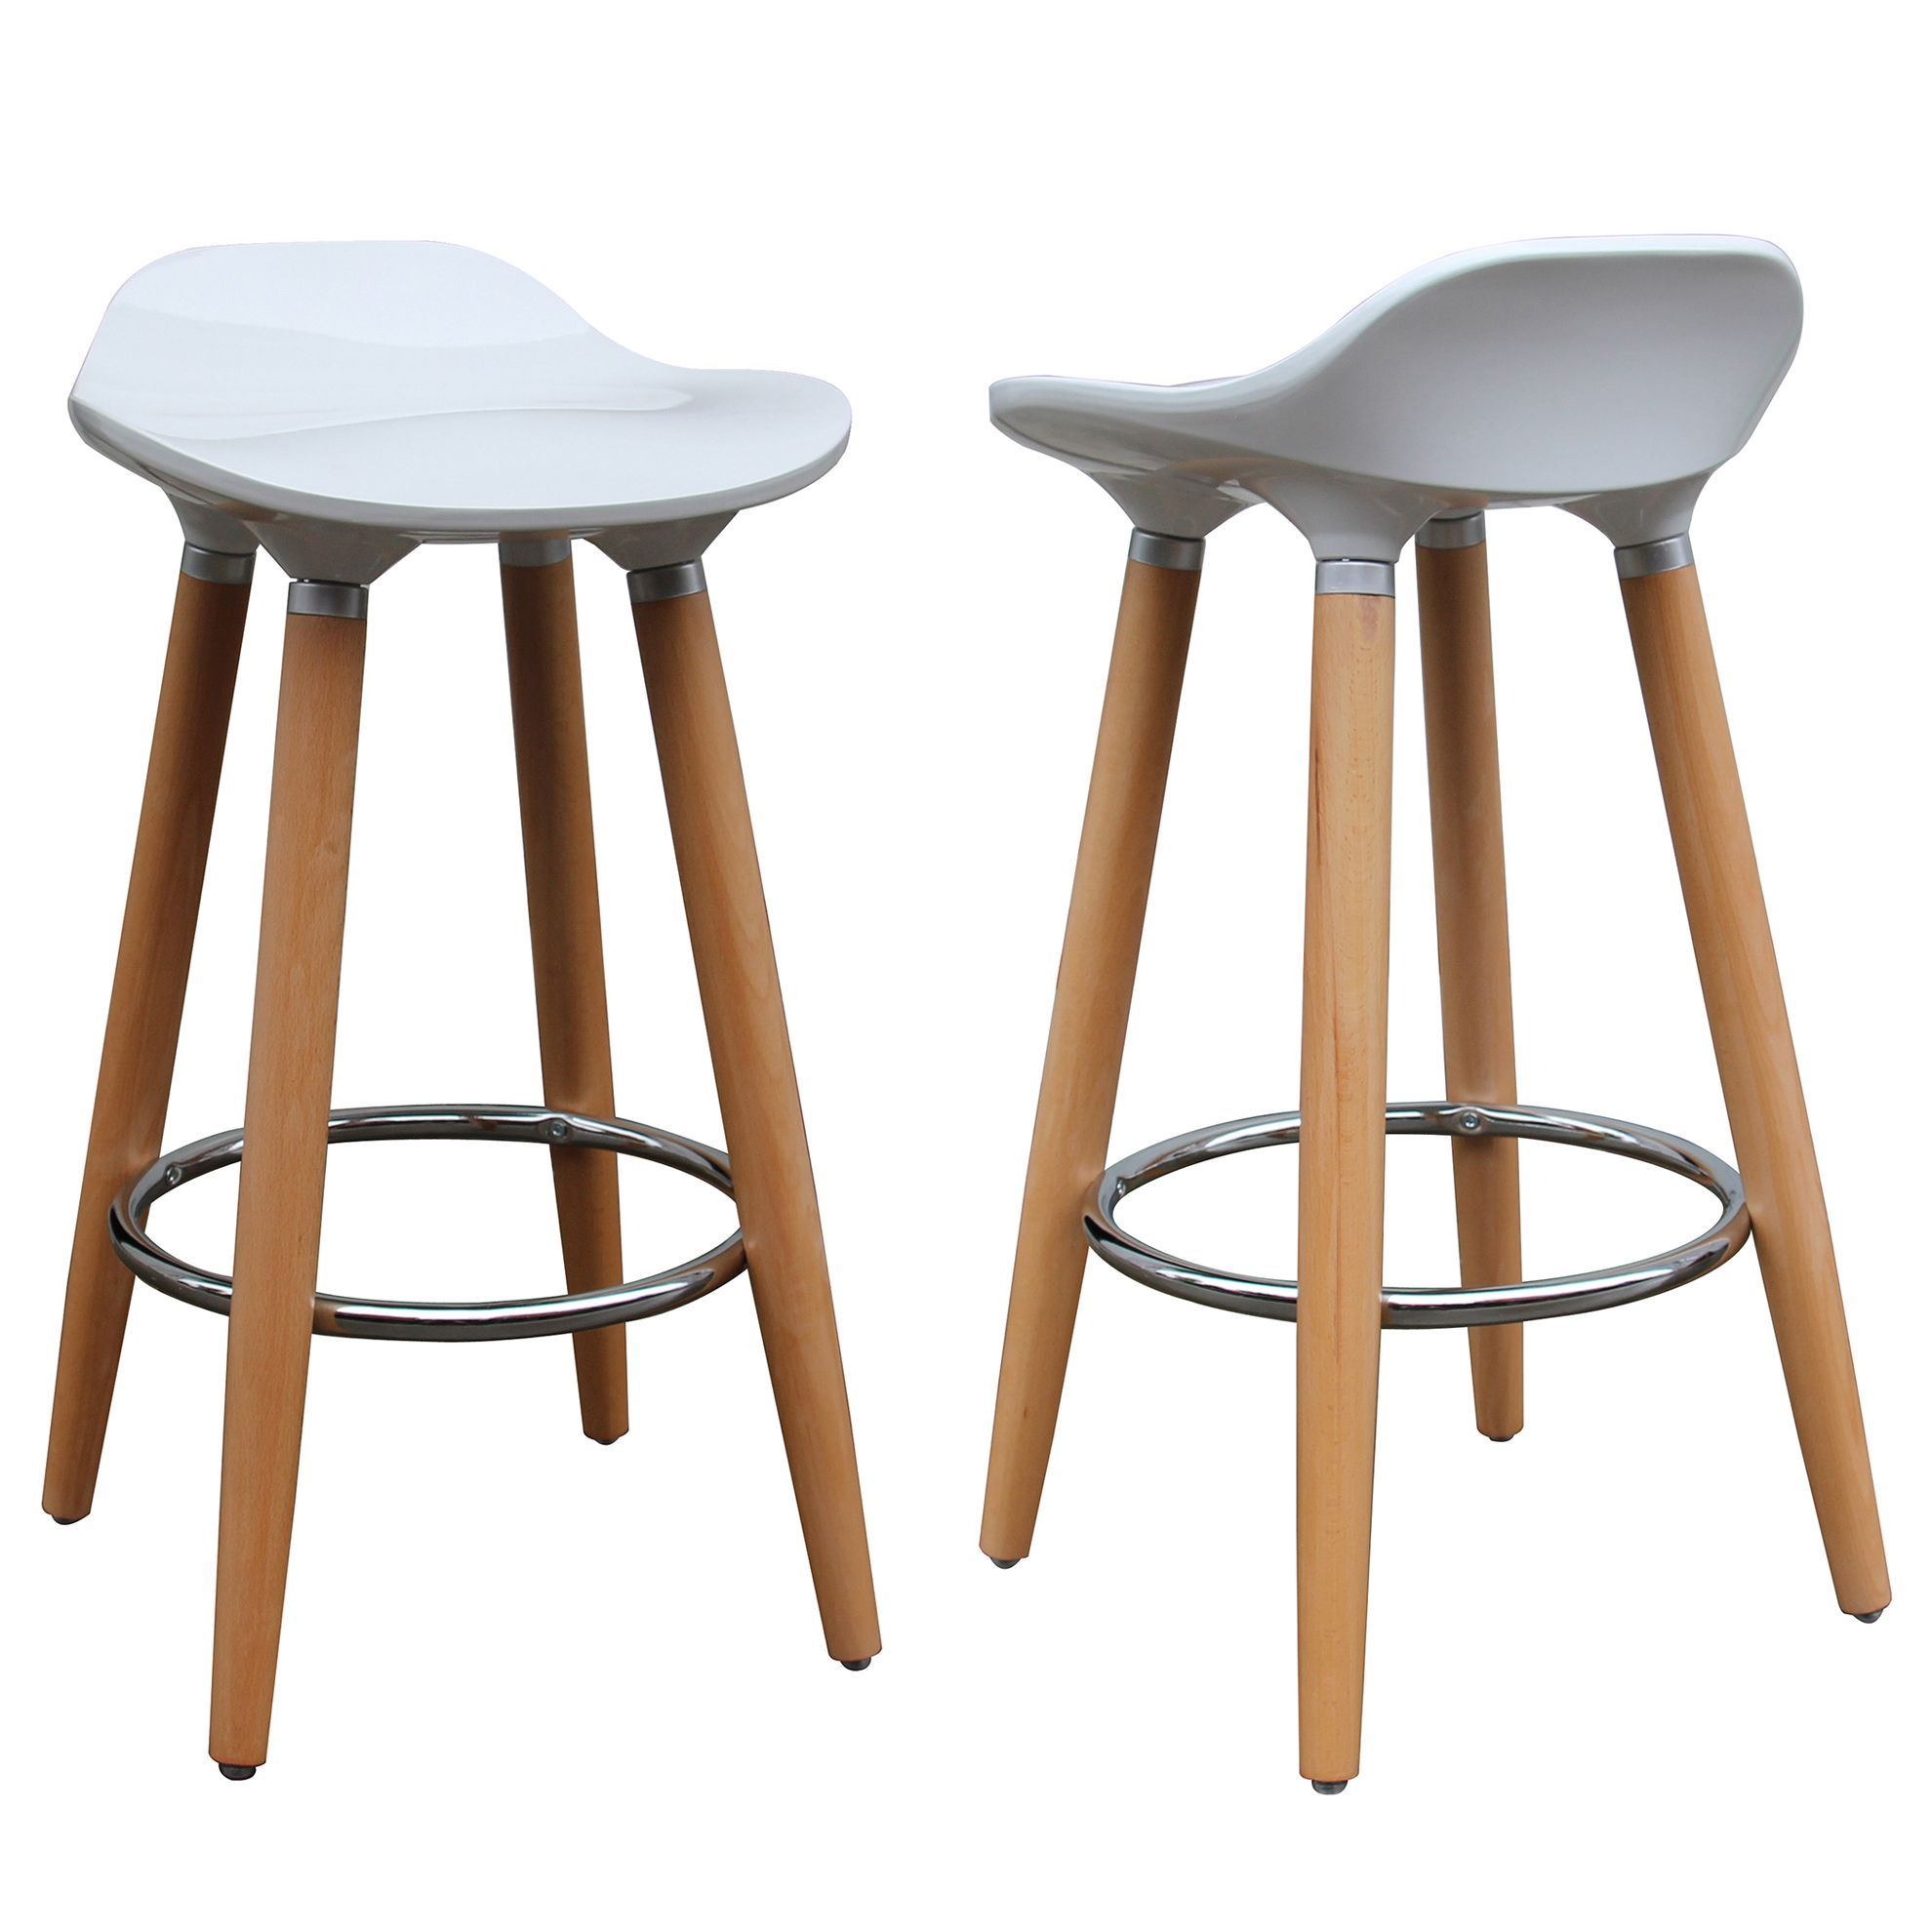 Each Stool Has A White Abs Plastic Seat And Naturally